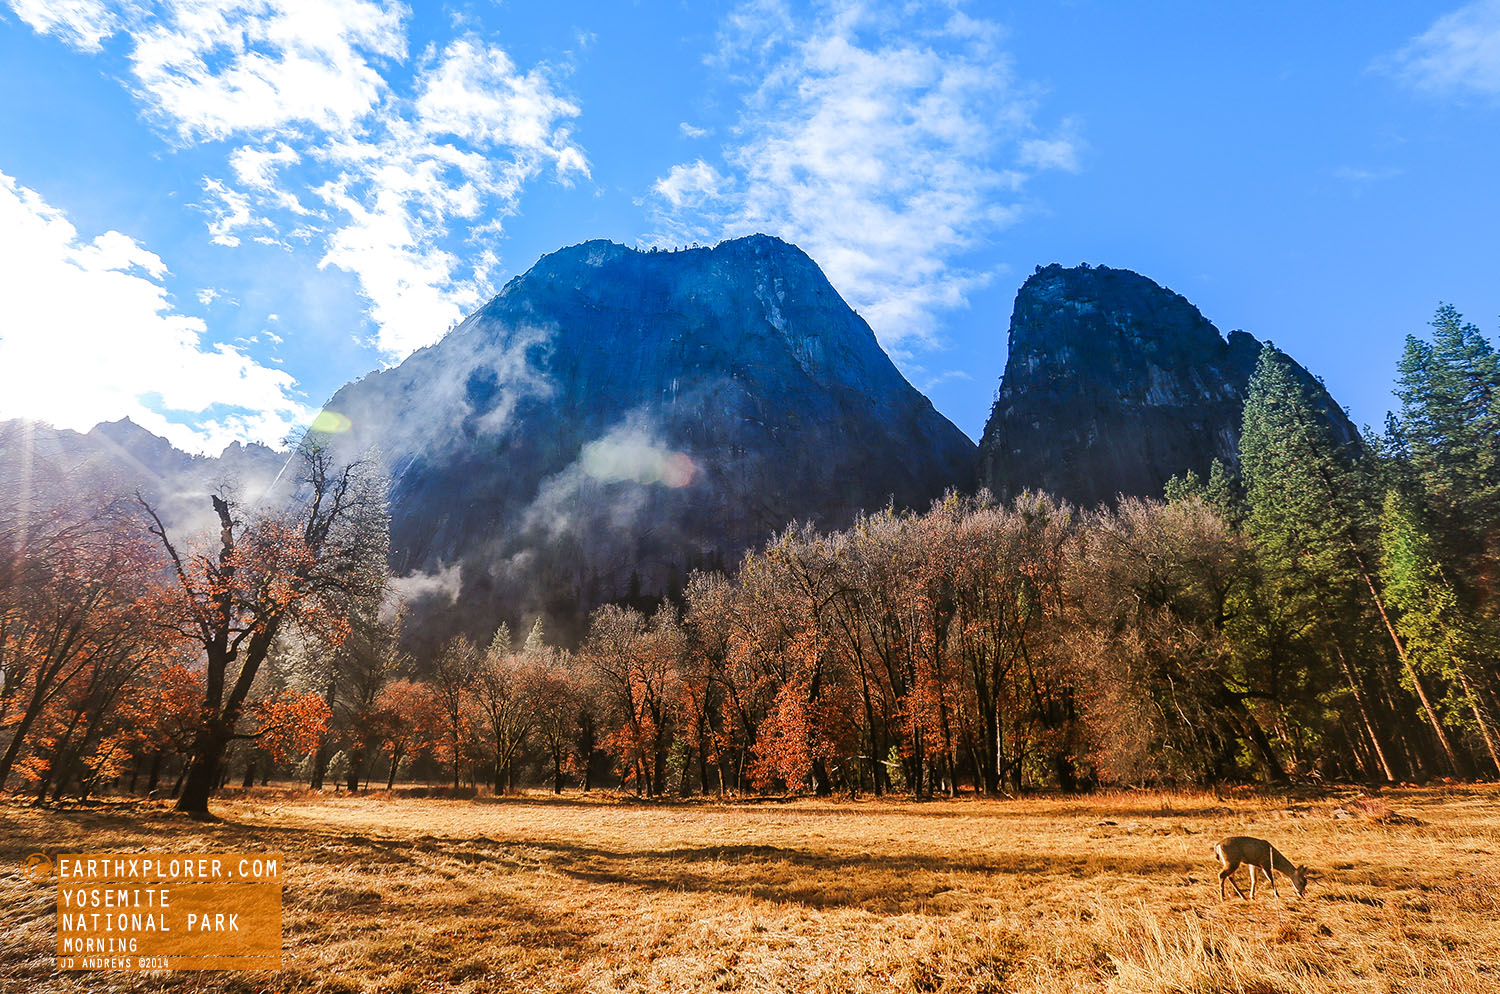 Yosemite Valley is a glacial valley in Yosemite National Park